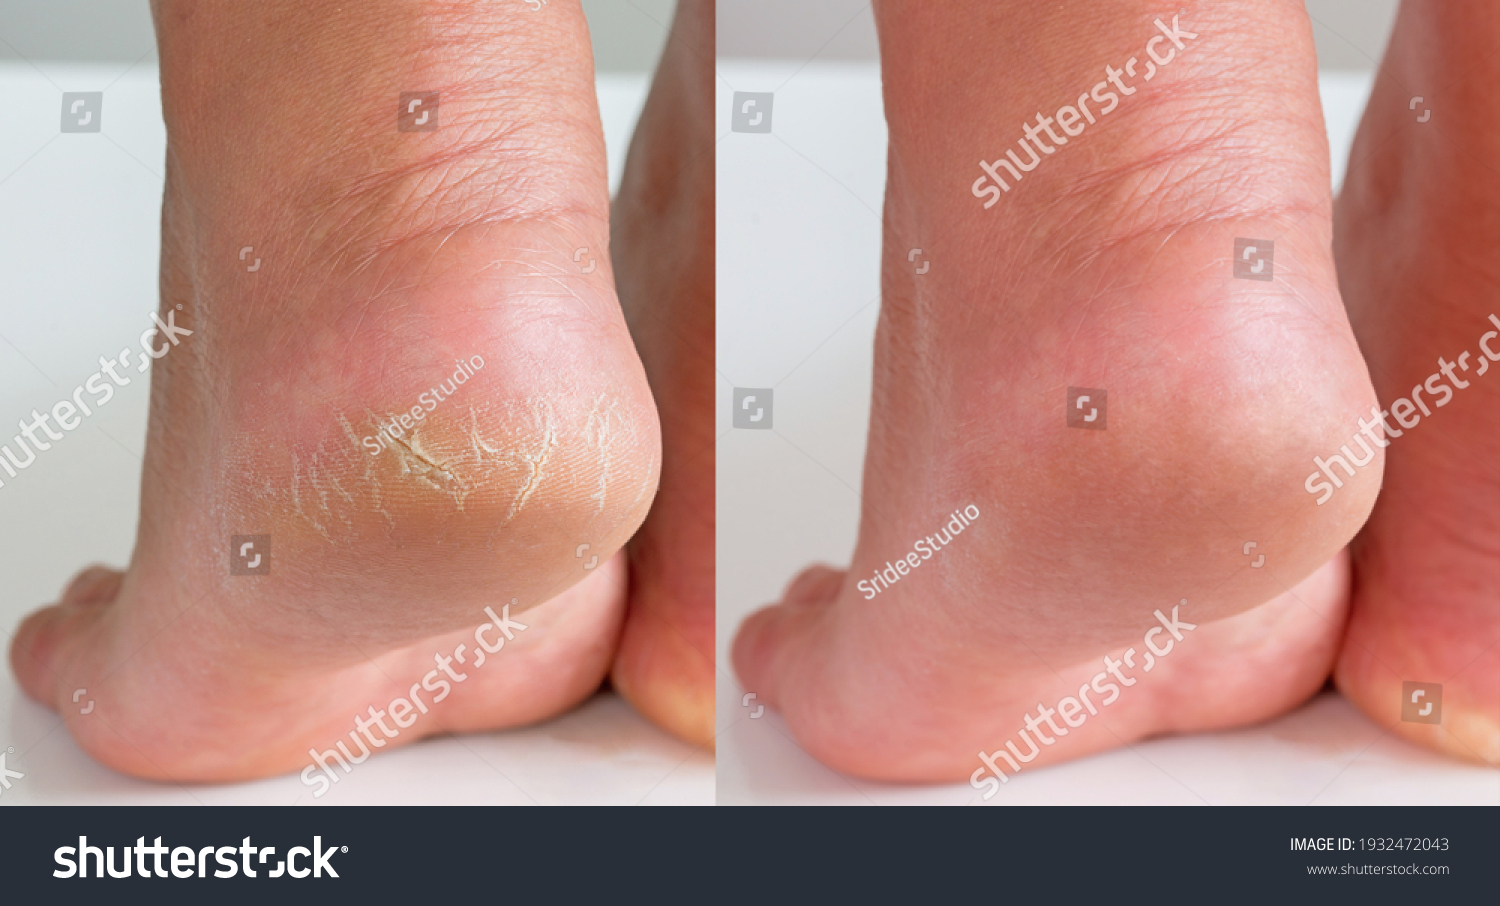 Image before and after treatment of dry heels cracks skin dehydrated skin on heels of female feet. #1932472043